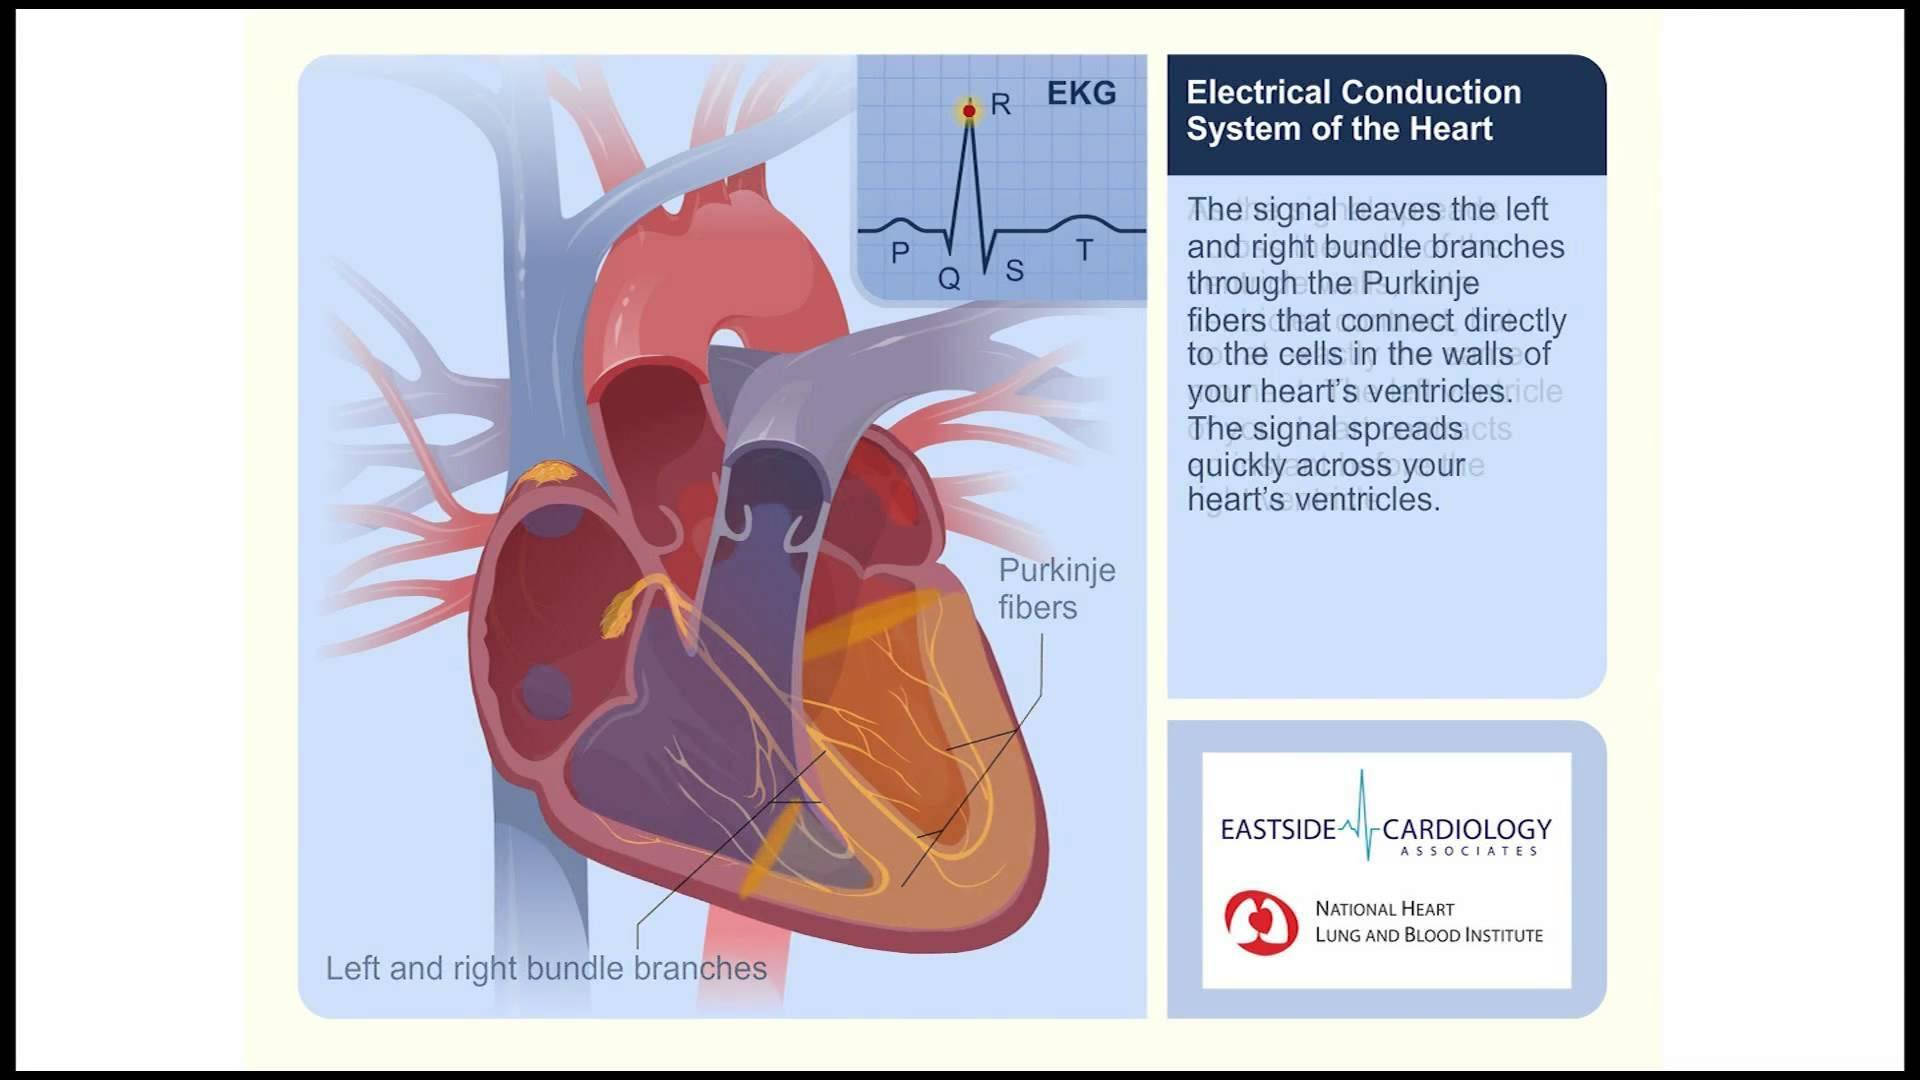 Electrical conduction system of the heart in relation to ecgekg i do not own this content how the electrical system of the heart works provided by eastside cardiology eastsideca ccuart Choice Image